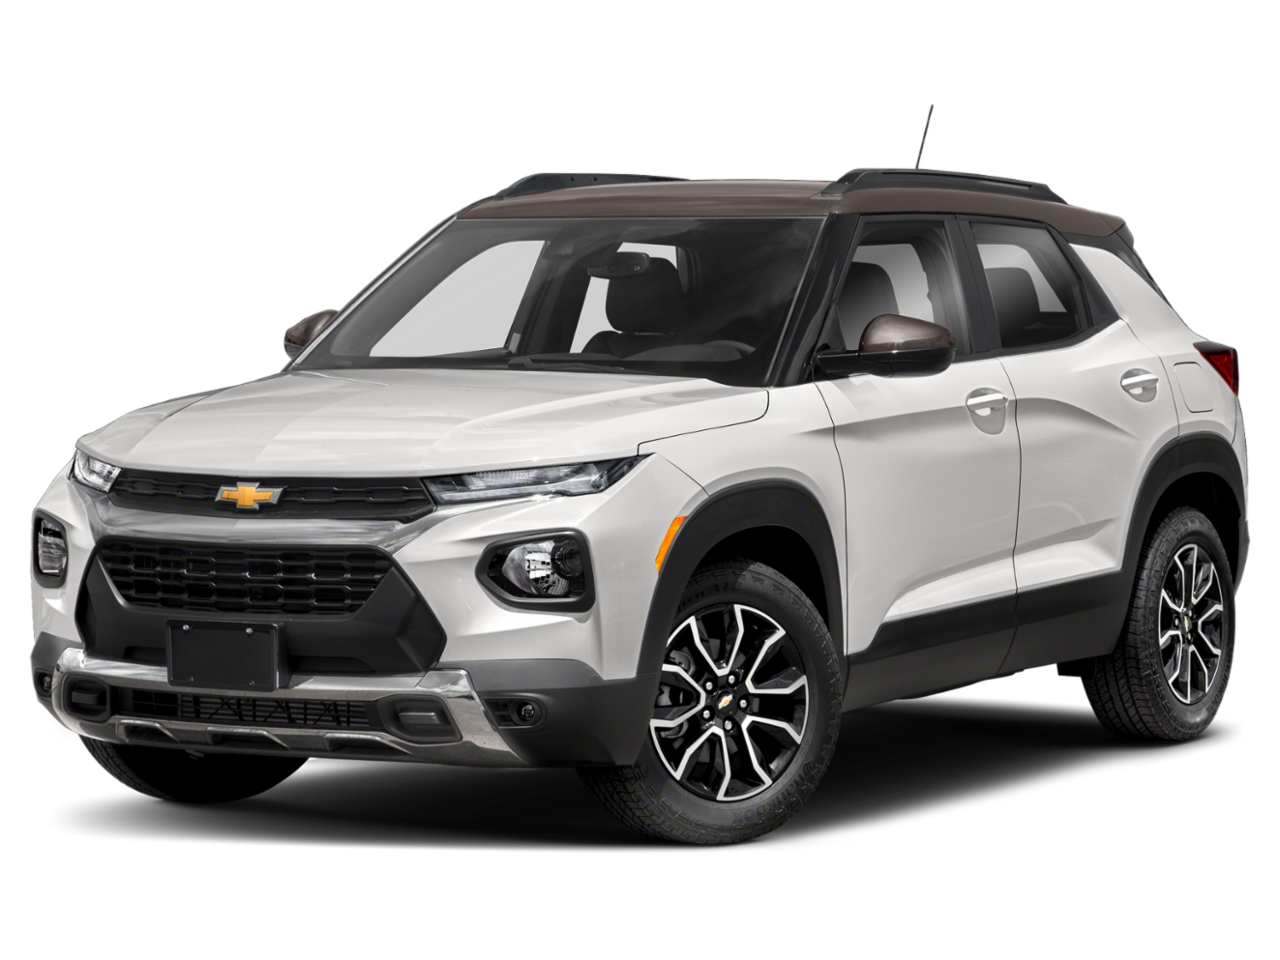 Chevrolet 2021 Trailblazer L